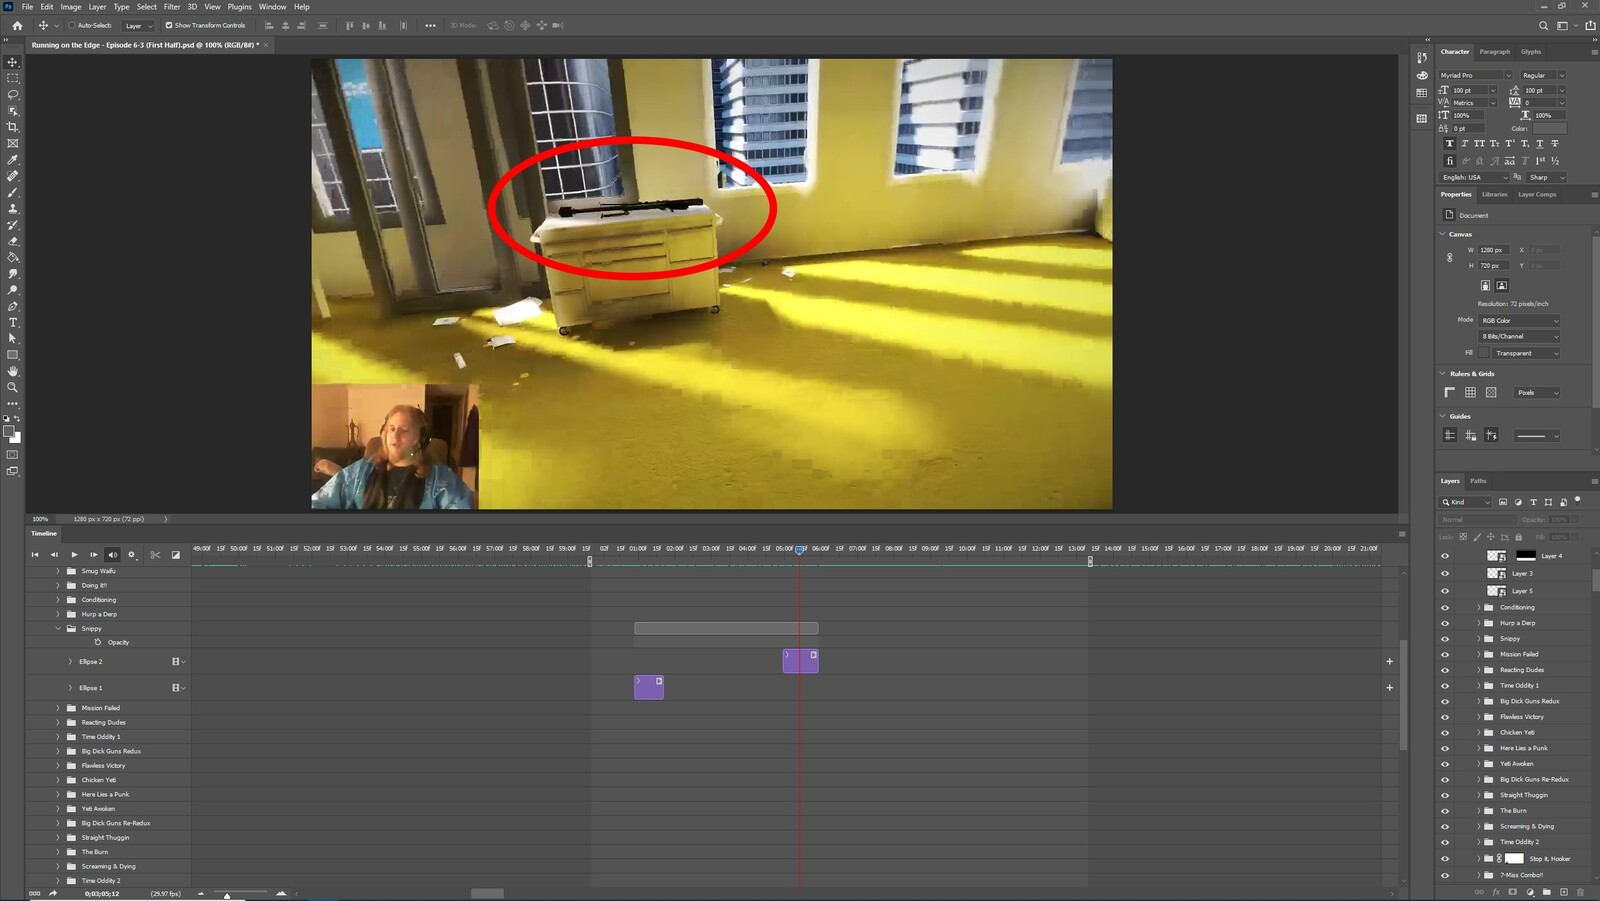 """The """"Gettin a Snippy, Part 1"""" visual effect within Photoshop video editor"""